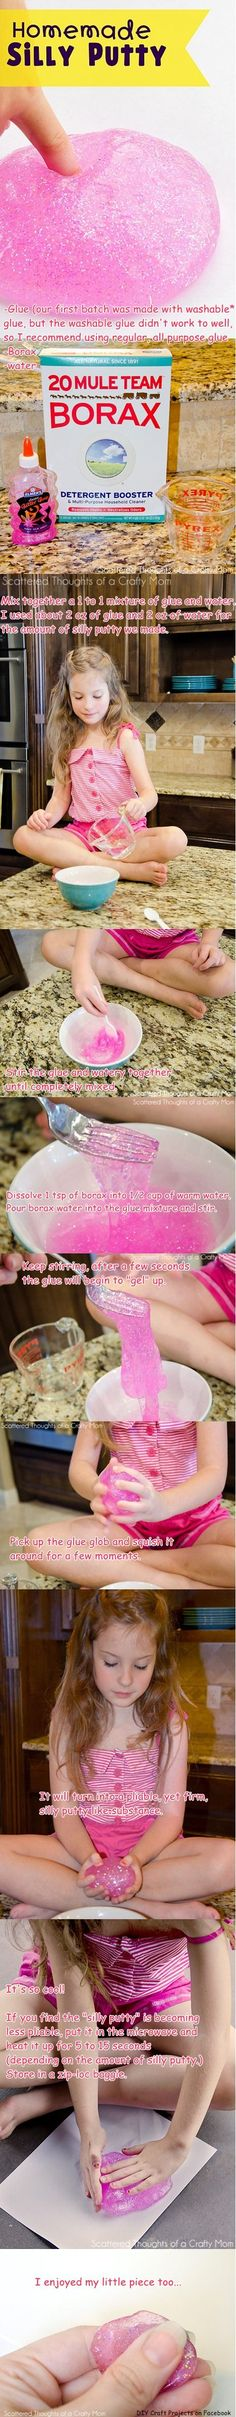 The girls will LOVE this!  Especially the pink glitter glue!  Totally doing this for family night :)